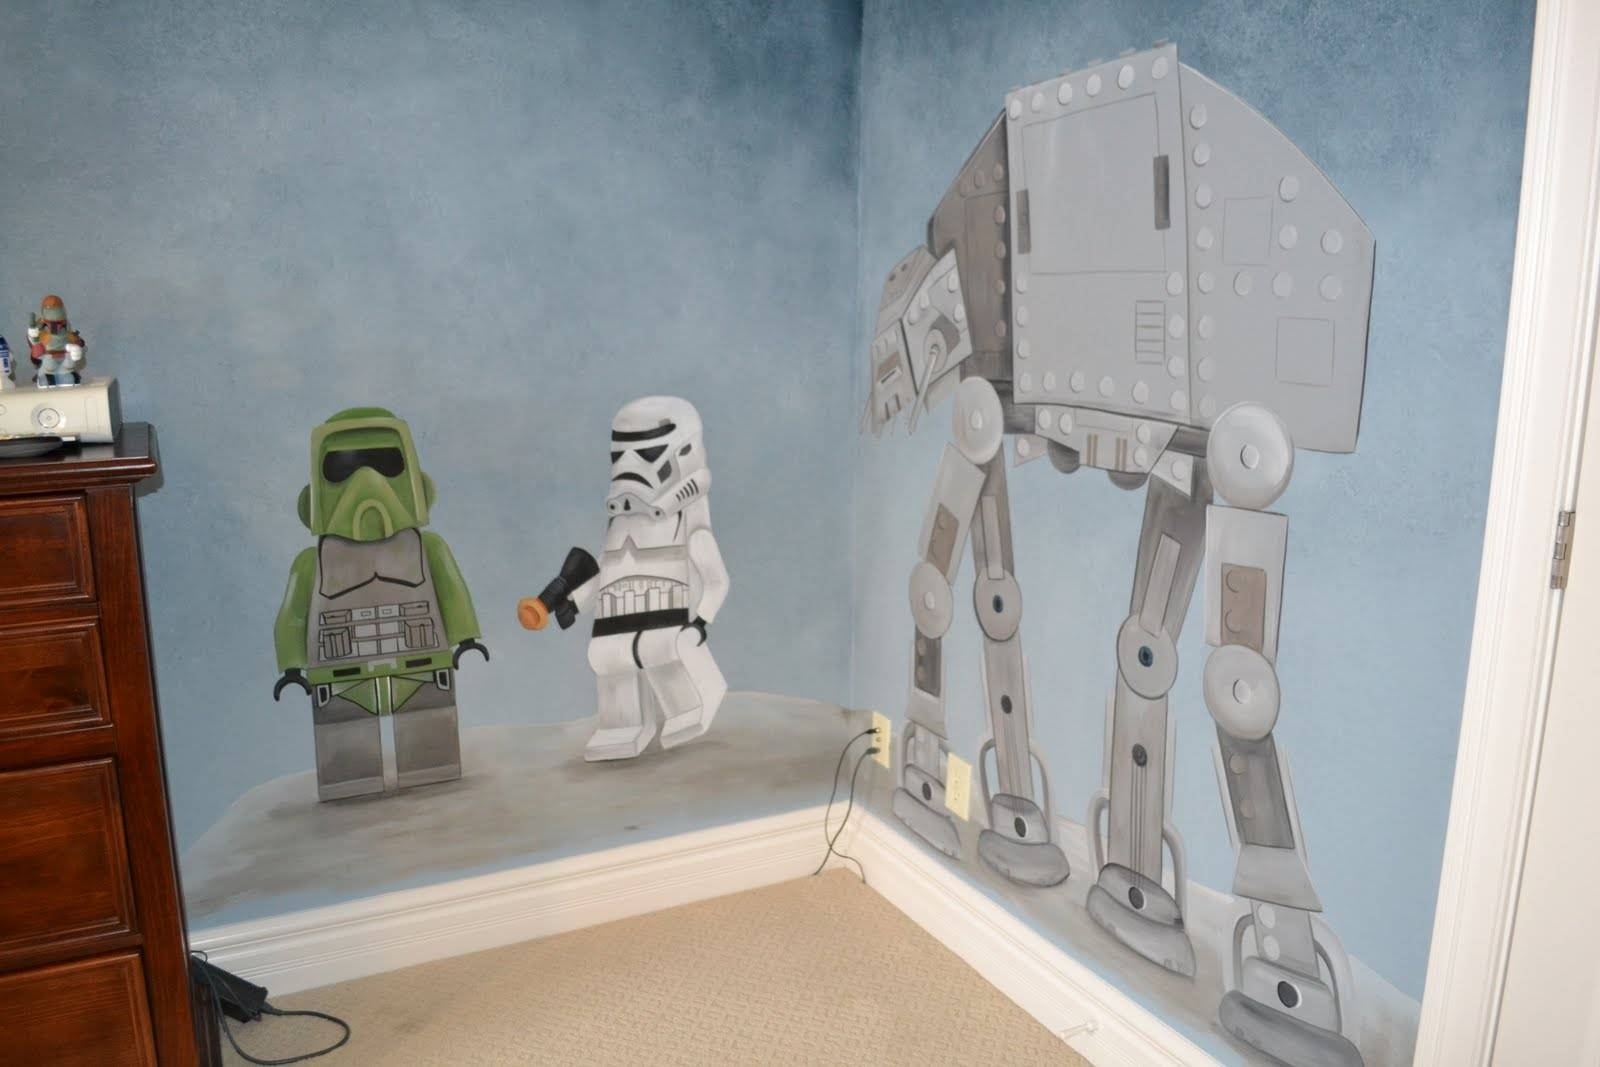 You're Artcorie Kline: Star Wars Mural With Regard To Most Up To Date Lego Star Wars Wall Art (View 14 of 20)